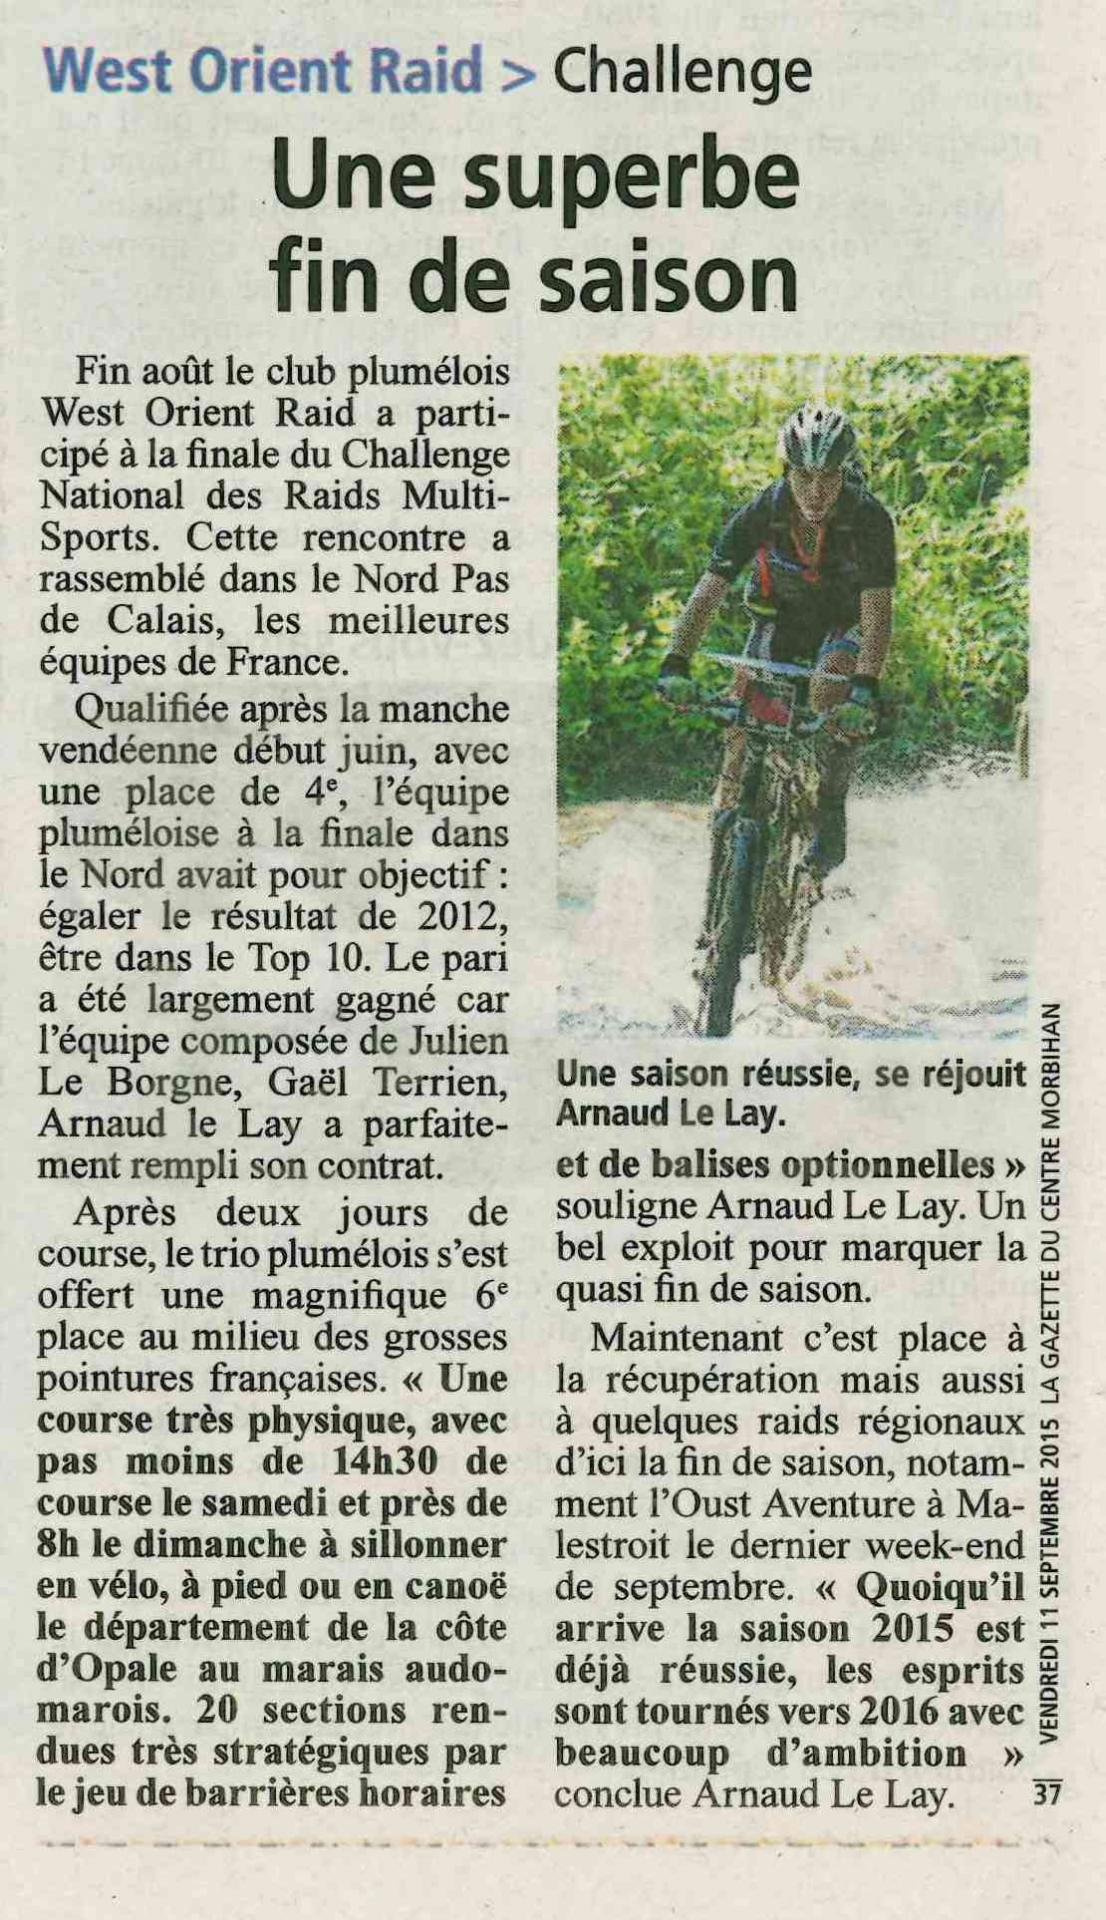 La gazette du morbihan 11 sept 2015